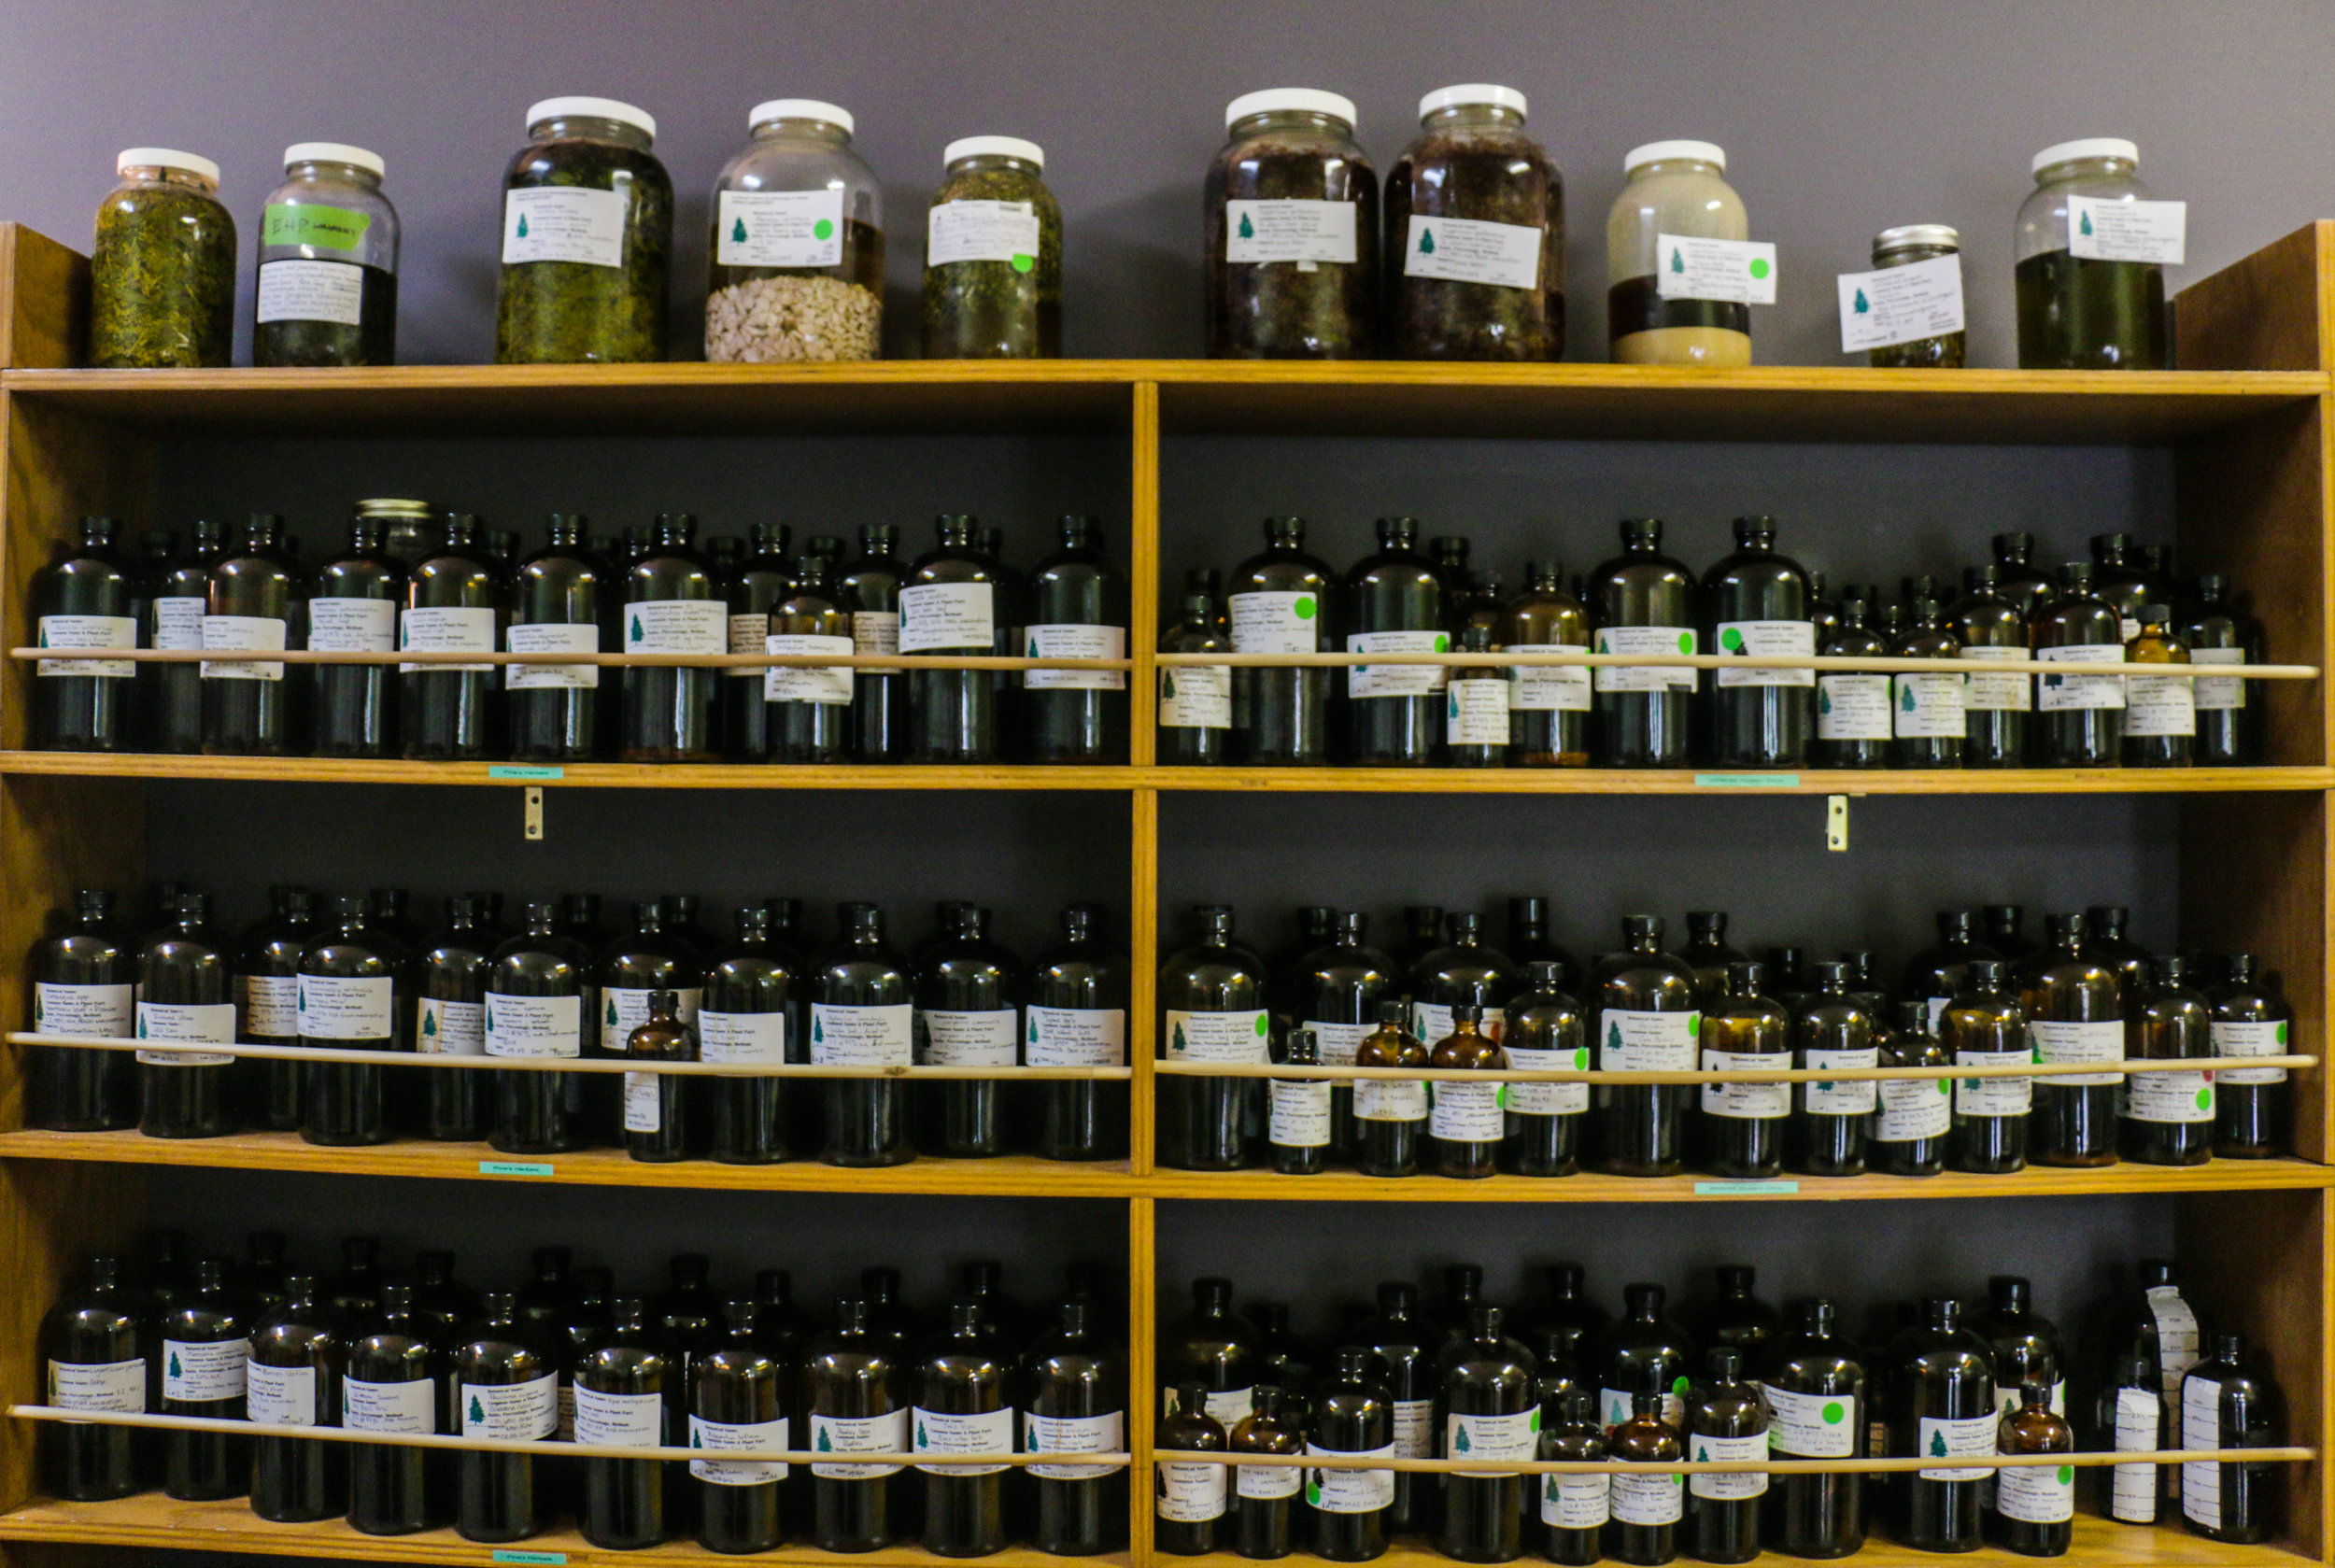 Macerating herbal medicine and finished tinctures in jars on a shelf at the Pine's Herbals apothecary